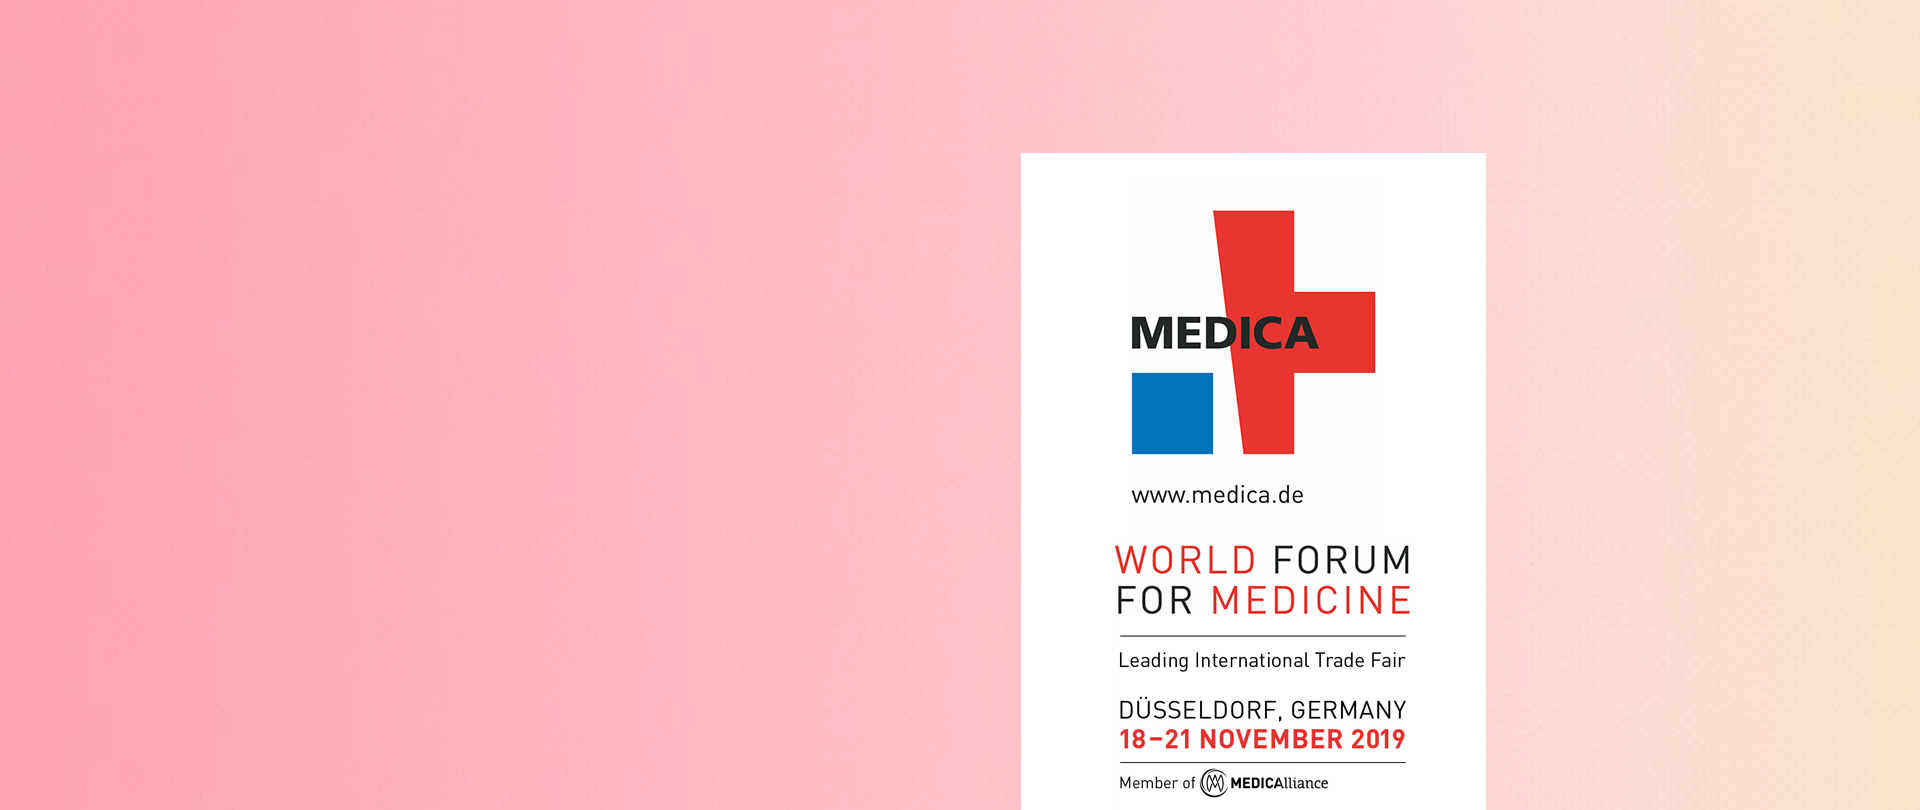 Presenti al World Forum for Medicine 2019